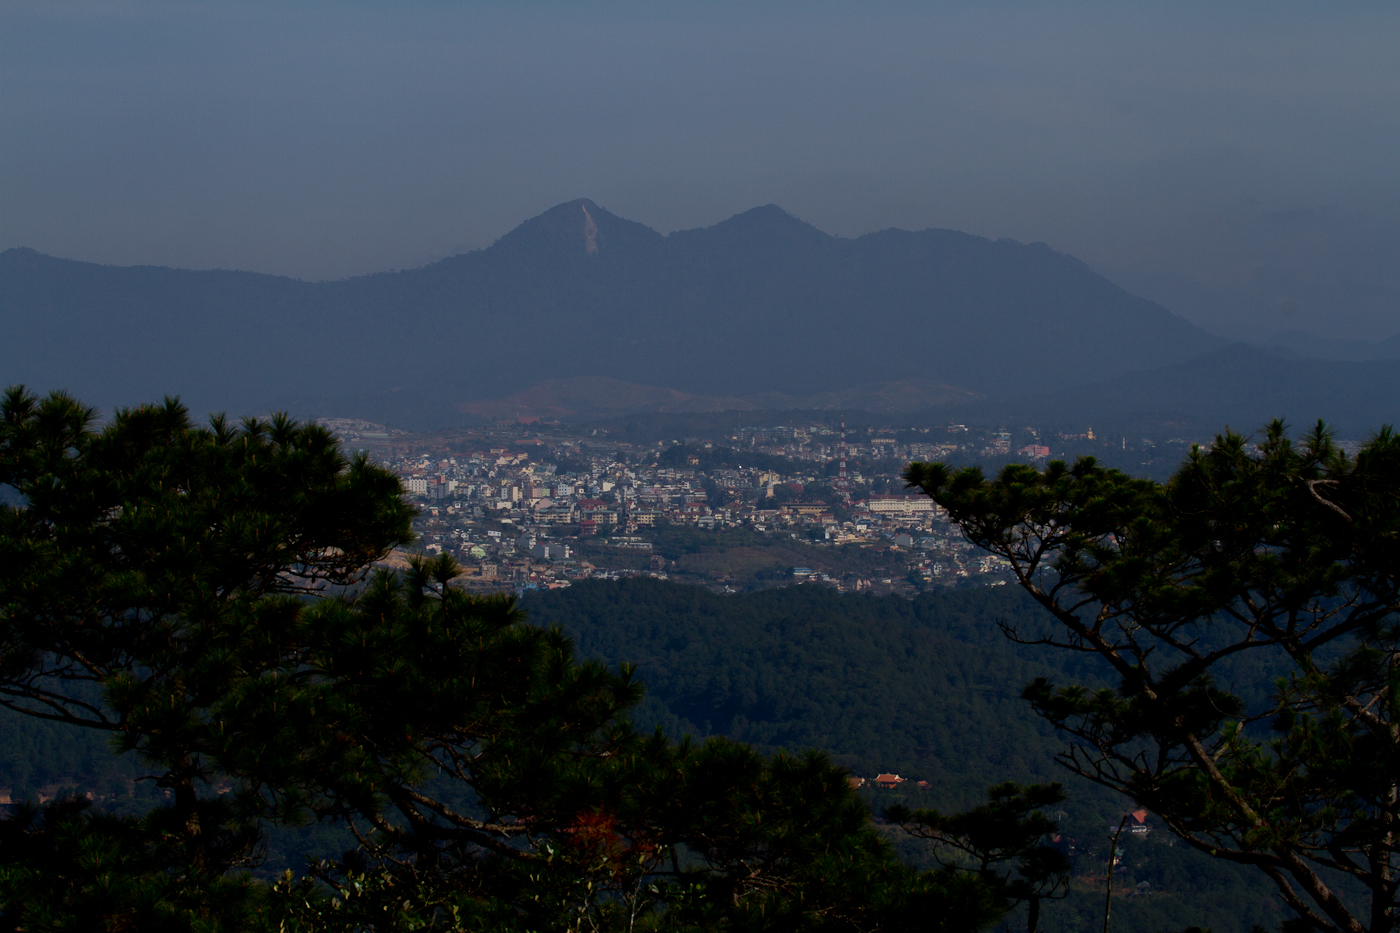 View over Dalat from the hills surrounding Paradise Lake.